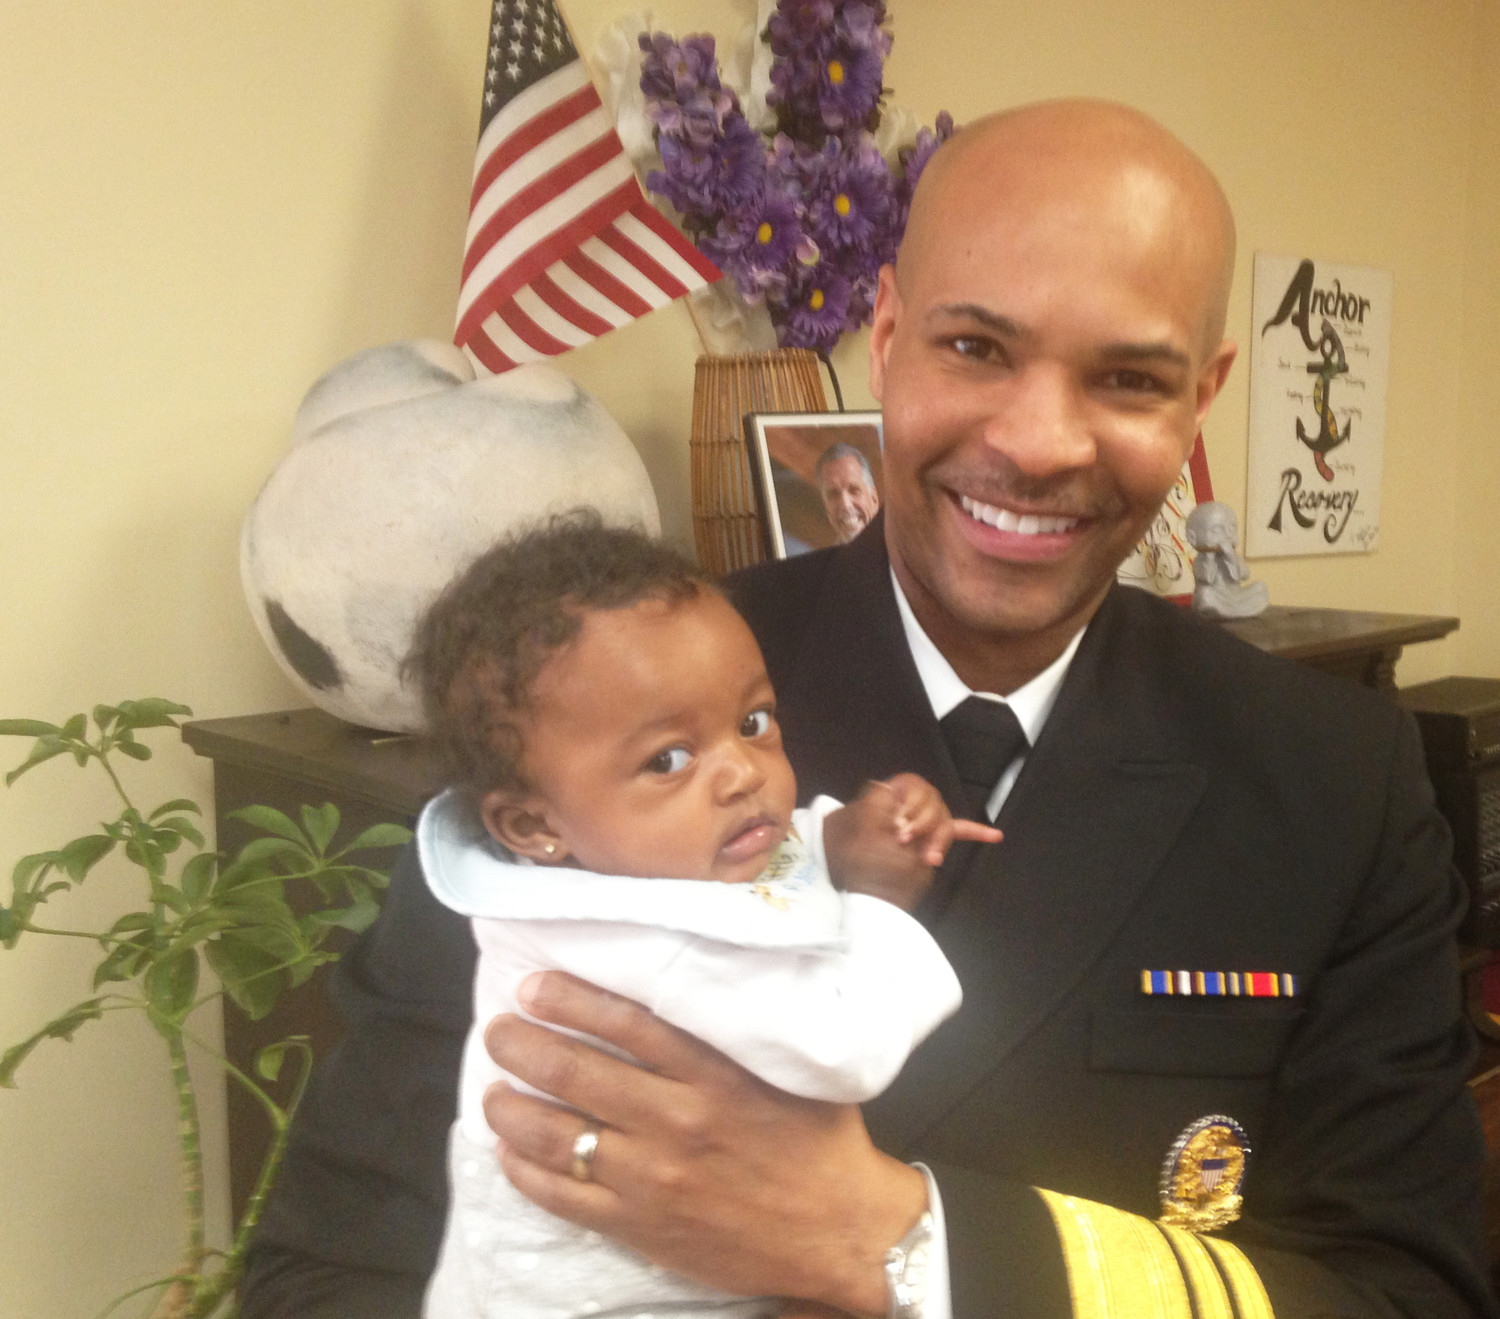 U.S. Surgeon General Dr. Jerome Adams holding a young baby girl during an interview at the Anchor Recovery Community Center on Jan. 26. Above his shoulder is the photograph of a smiling Jim Gillen, one of the leaders of the recovery community in Rhode Island.